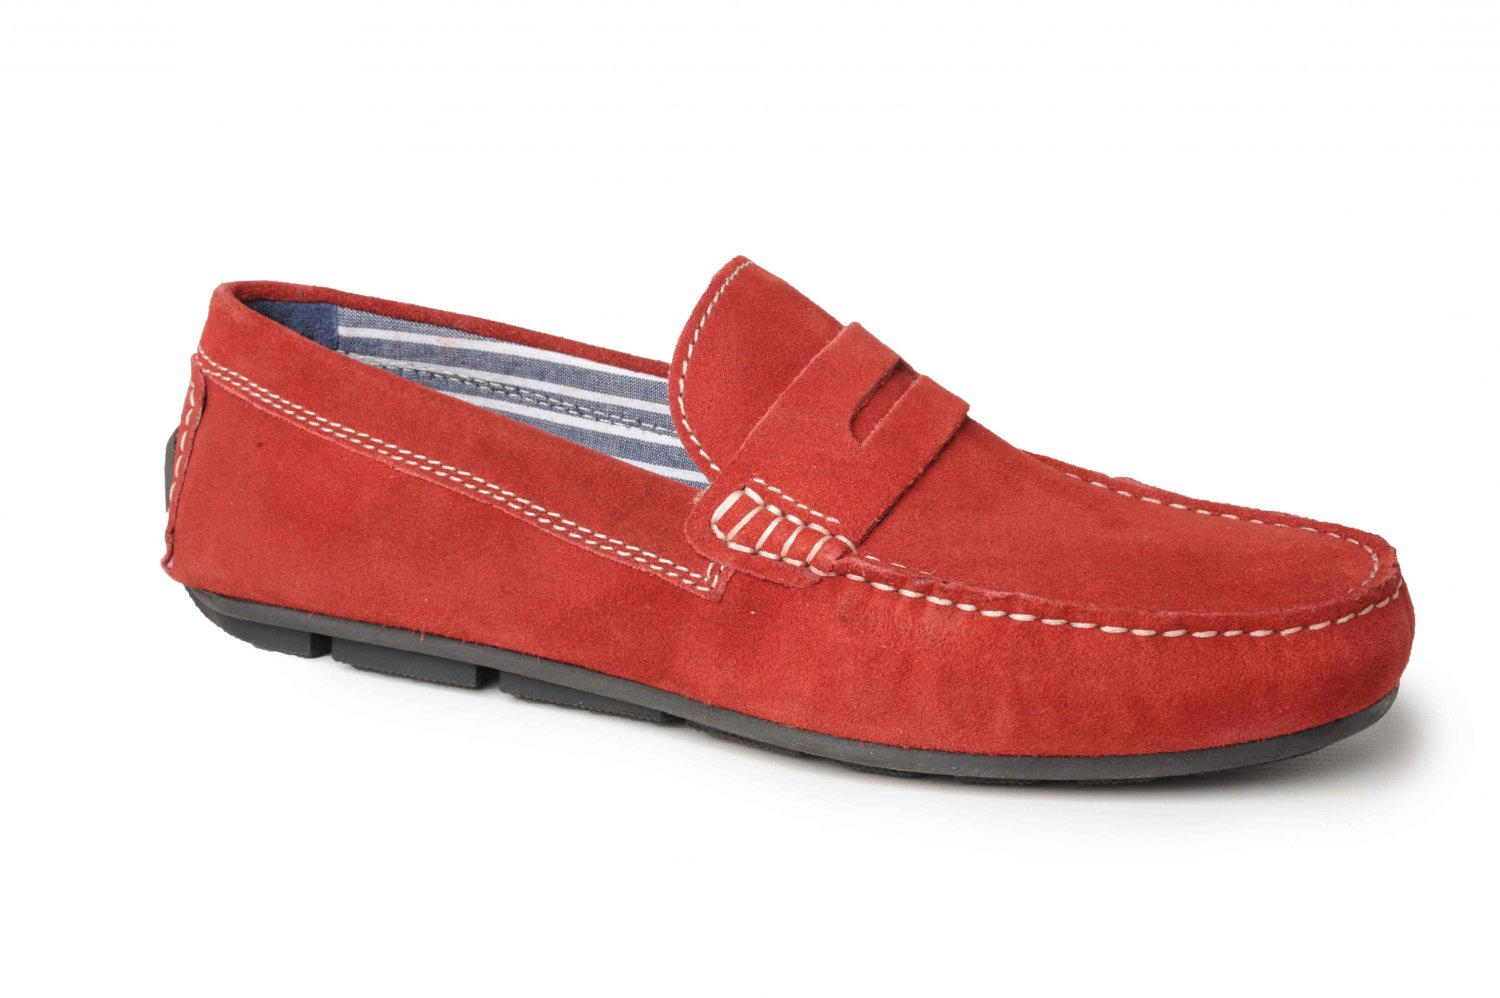 Catesby Men's Suede Leather Moccasin Driving Loafers I Red